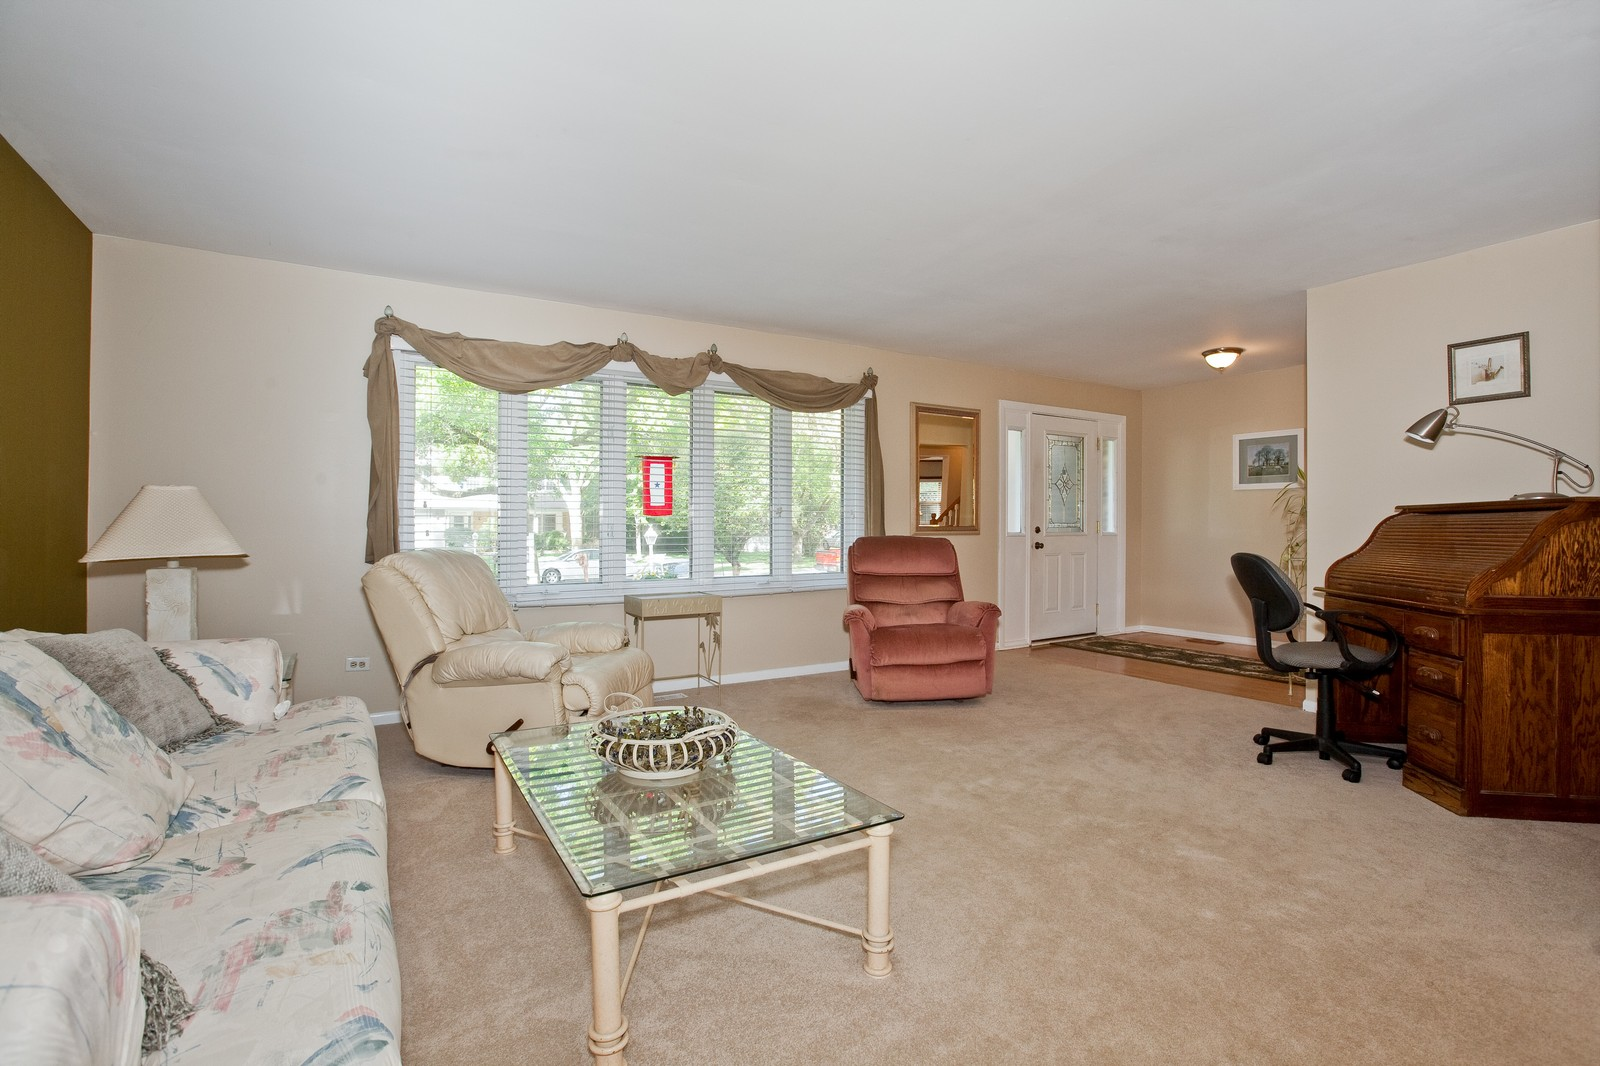 Real Estate Photography - 6511 Terrace, Downers Grove, IL, 60516 - Living Room